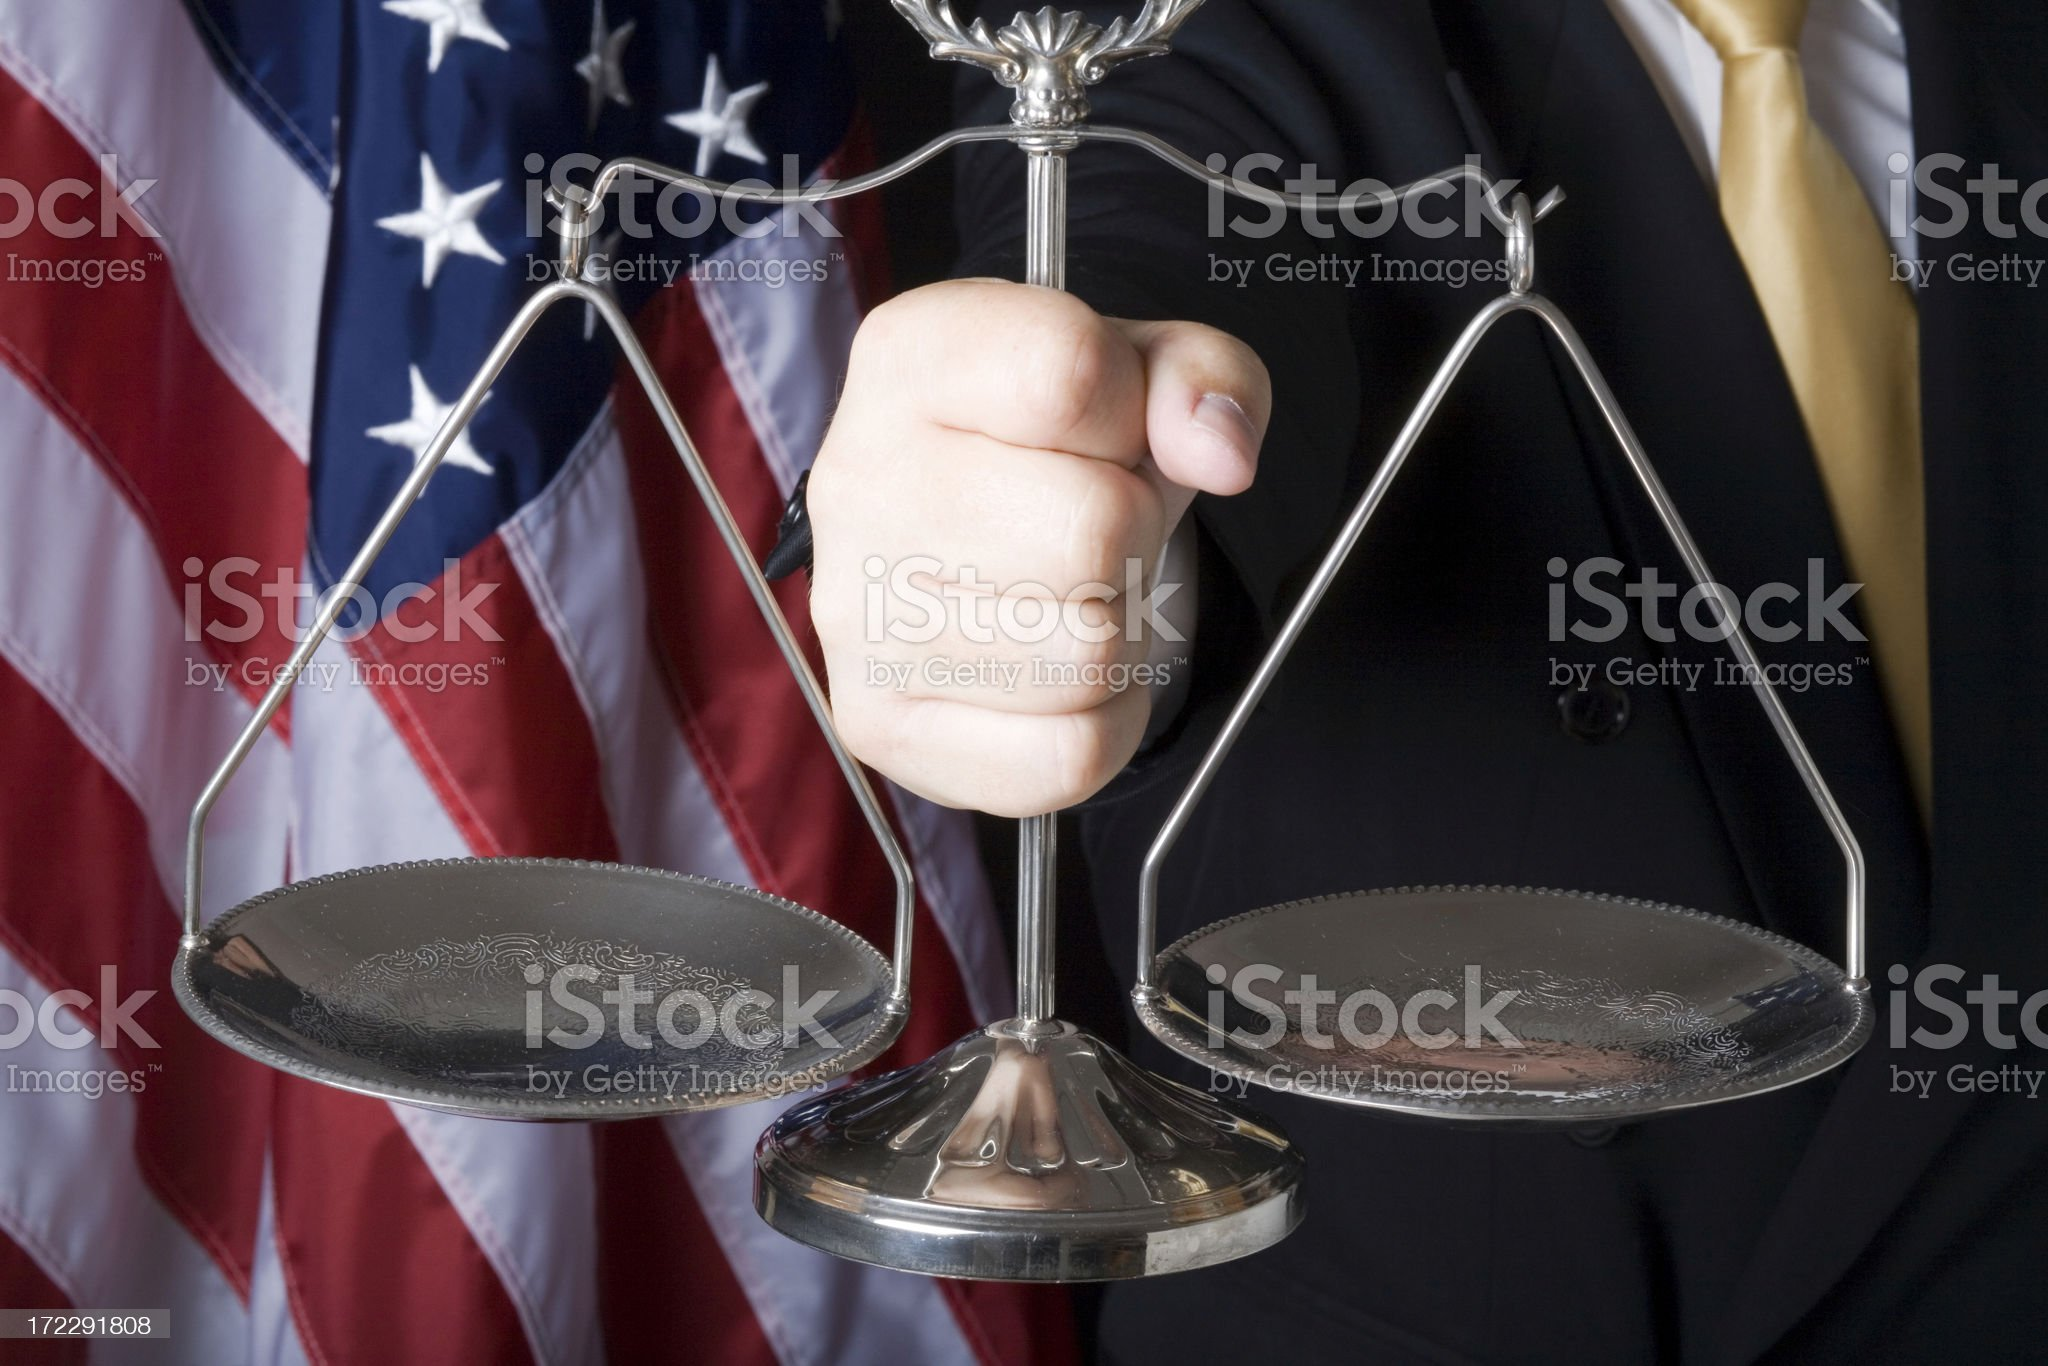 Scale of justice held in hand royalty-free stock photo